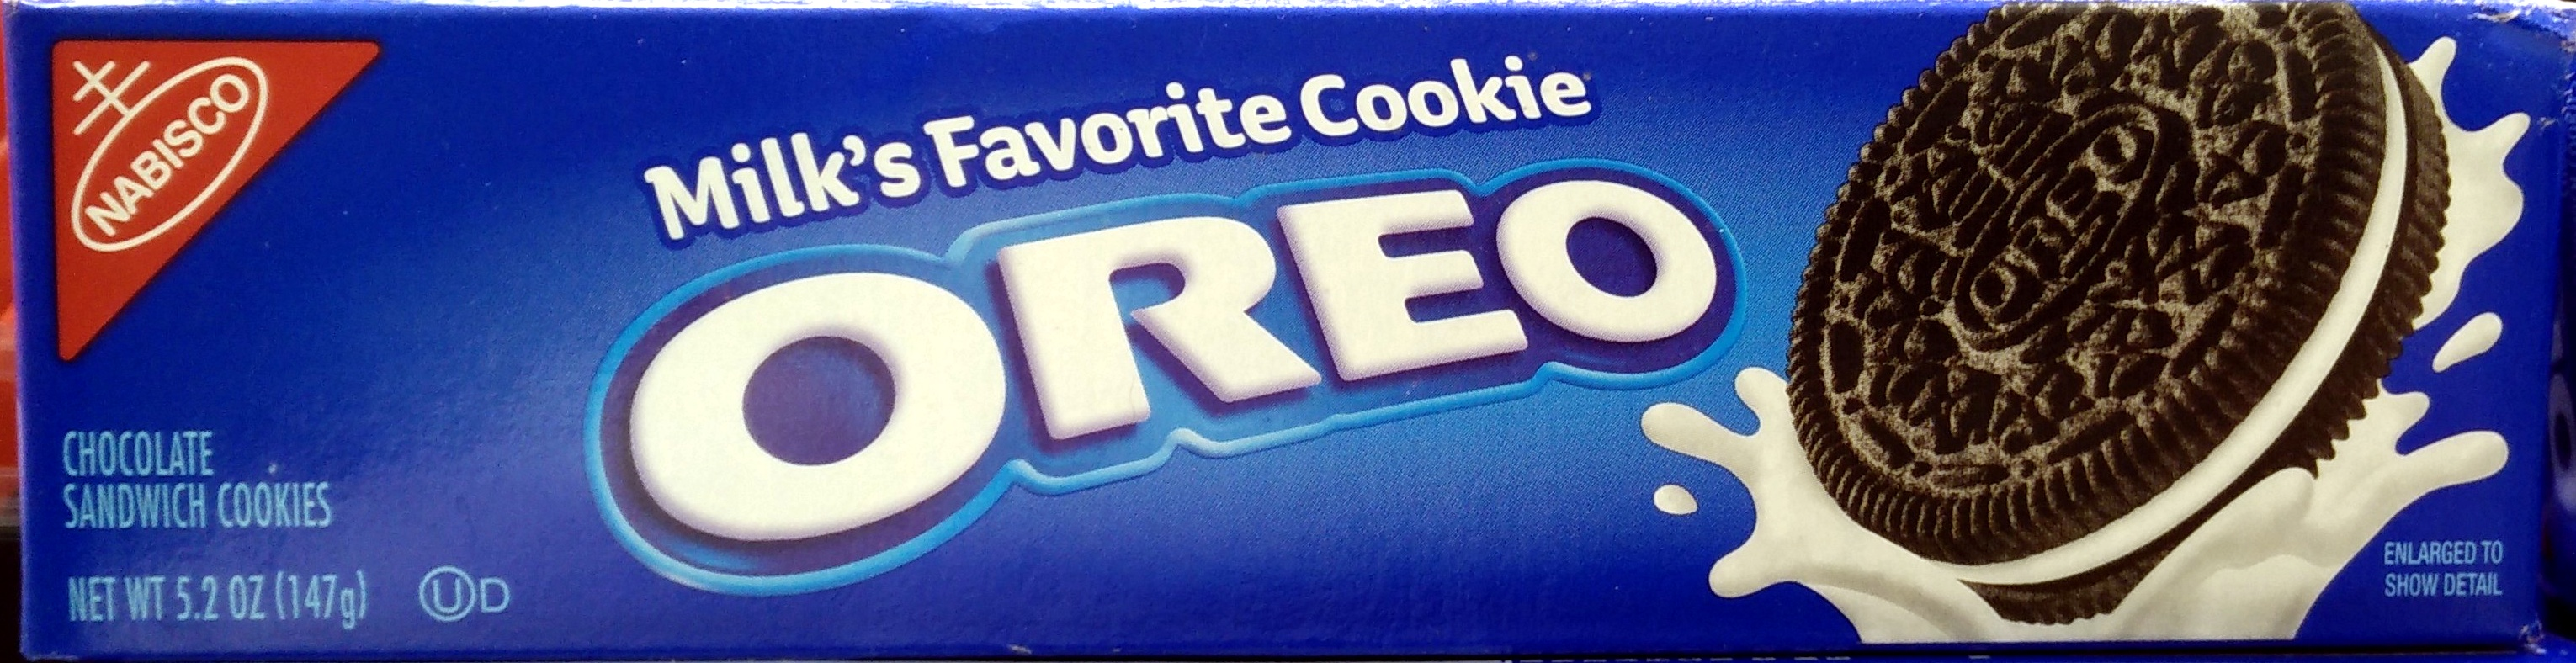 Nabisco oreo cookies-convenience pack chocolate 1x5.2 oz - Product - en